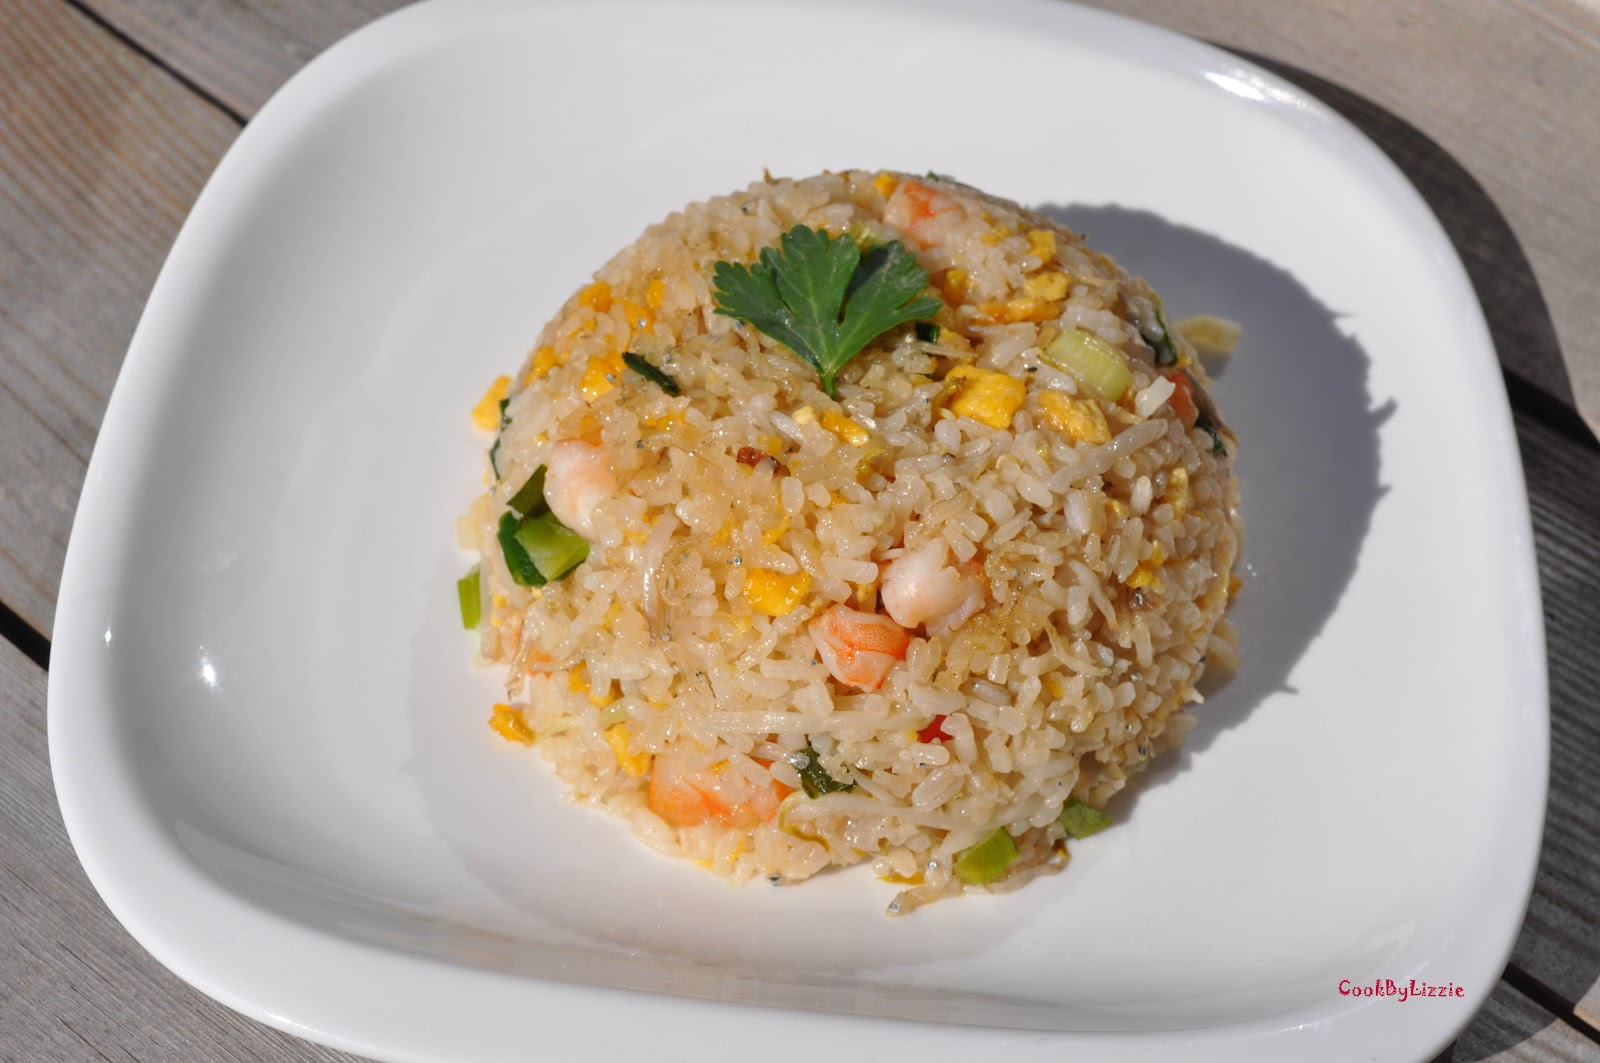 Cook by lizzie salted fish fried rice yum yum for Fish fried rice